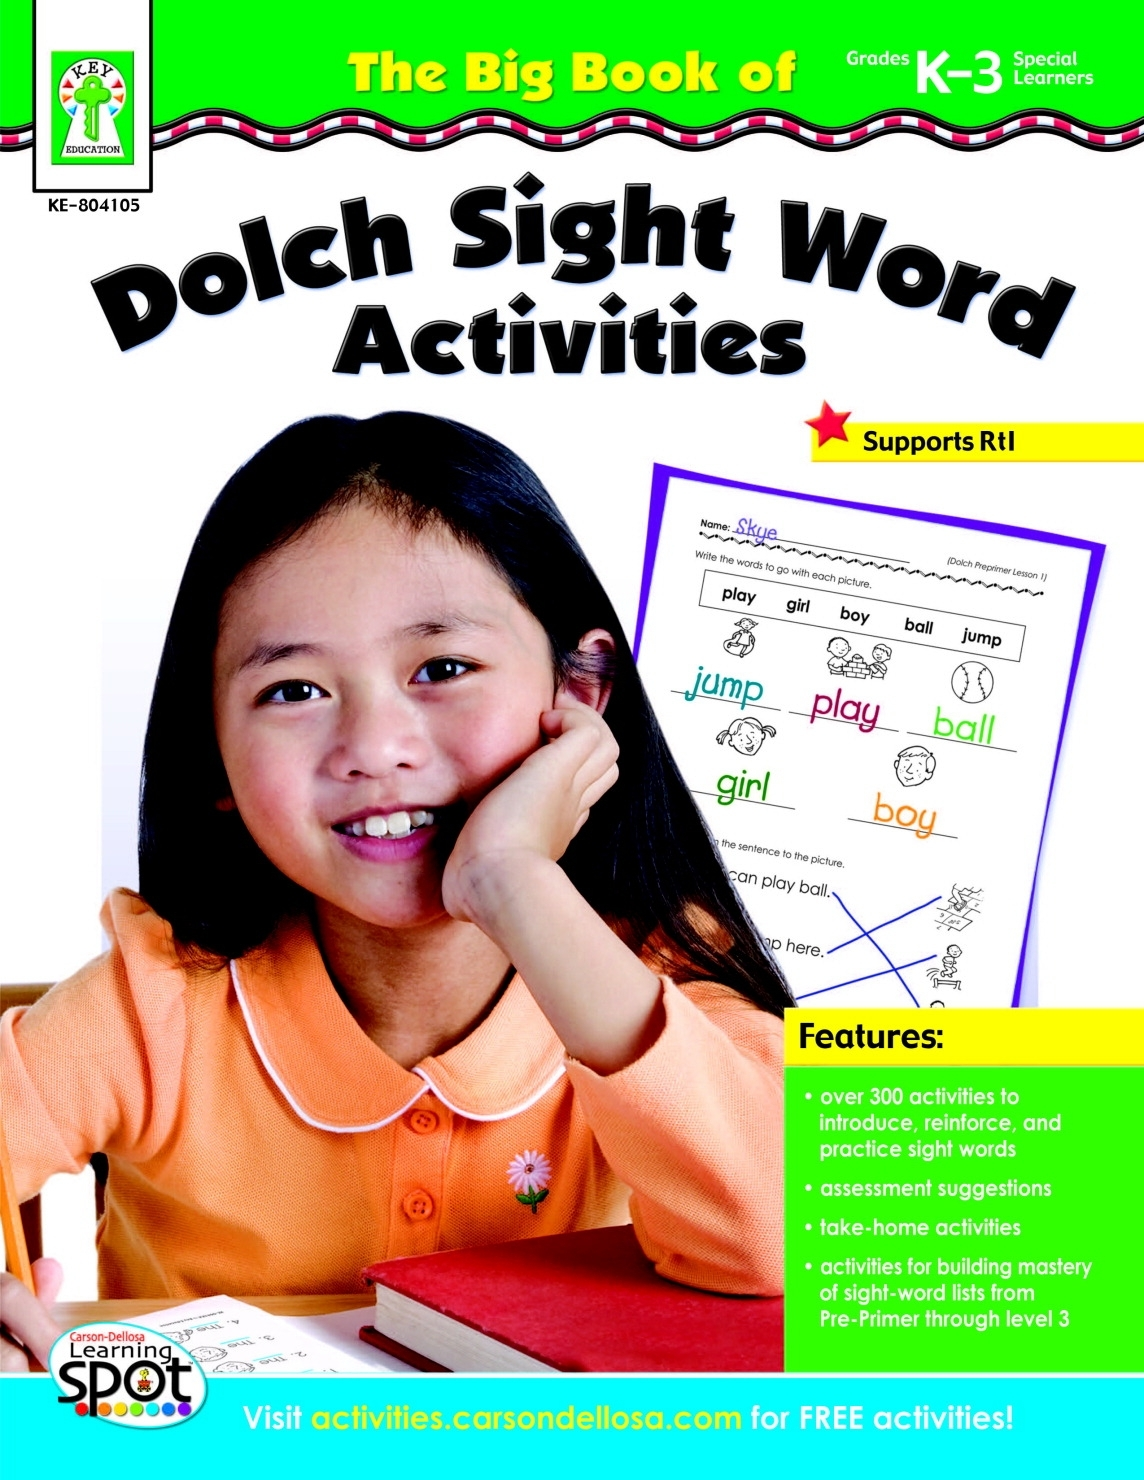 Learning: Classroom Reading & Writing Resources Sight Word Activities - 1432573 - Carson Dellosa The Big Book Of Dolch Sight Word Activities Book; Grade K To 3 1432573